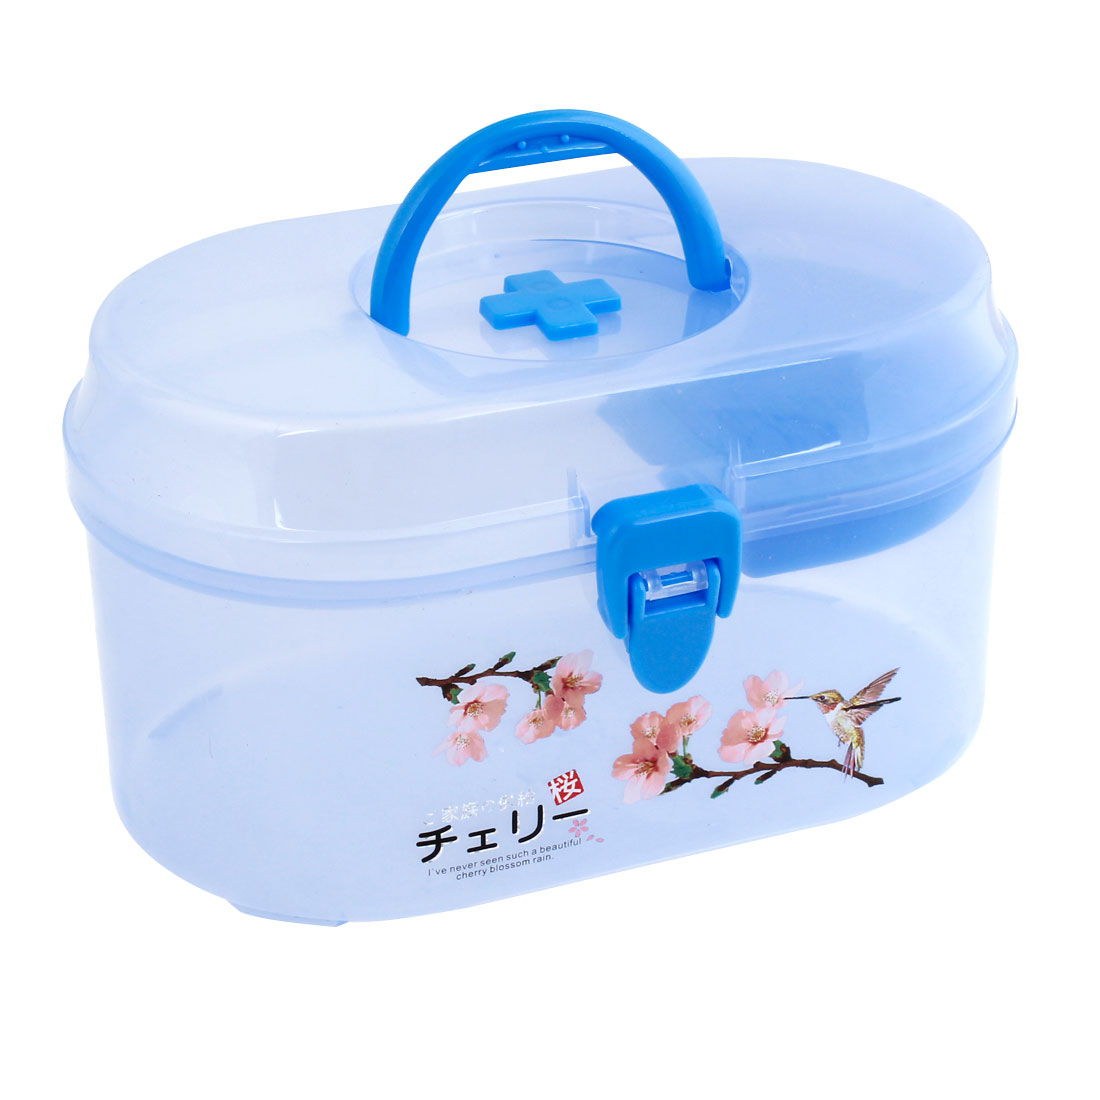 Family Plastic Flower Health Care Medicine Box Case Holder Clear Blue